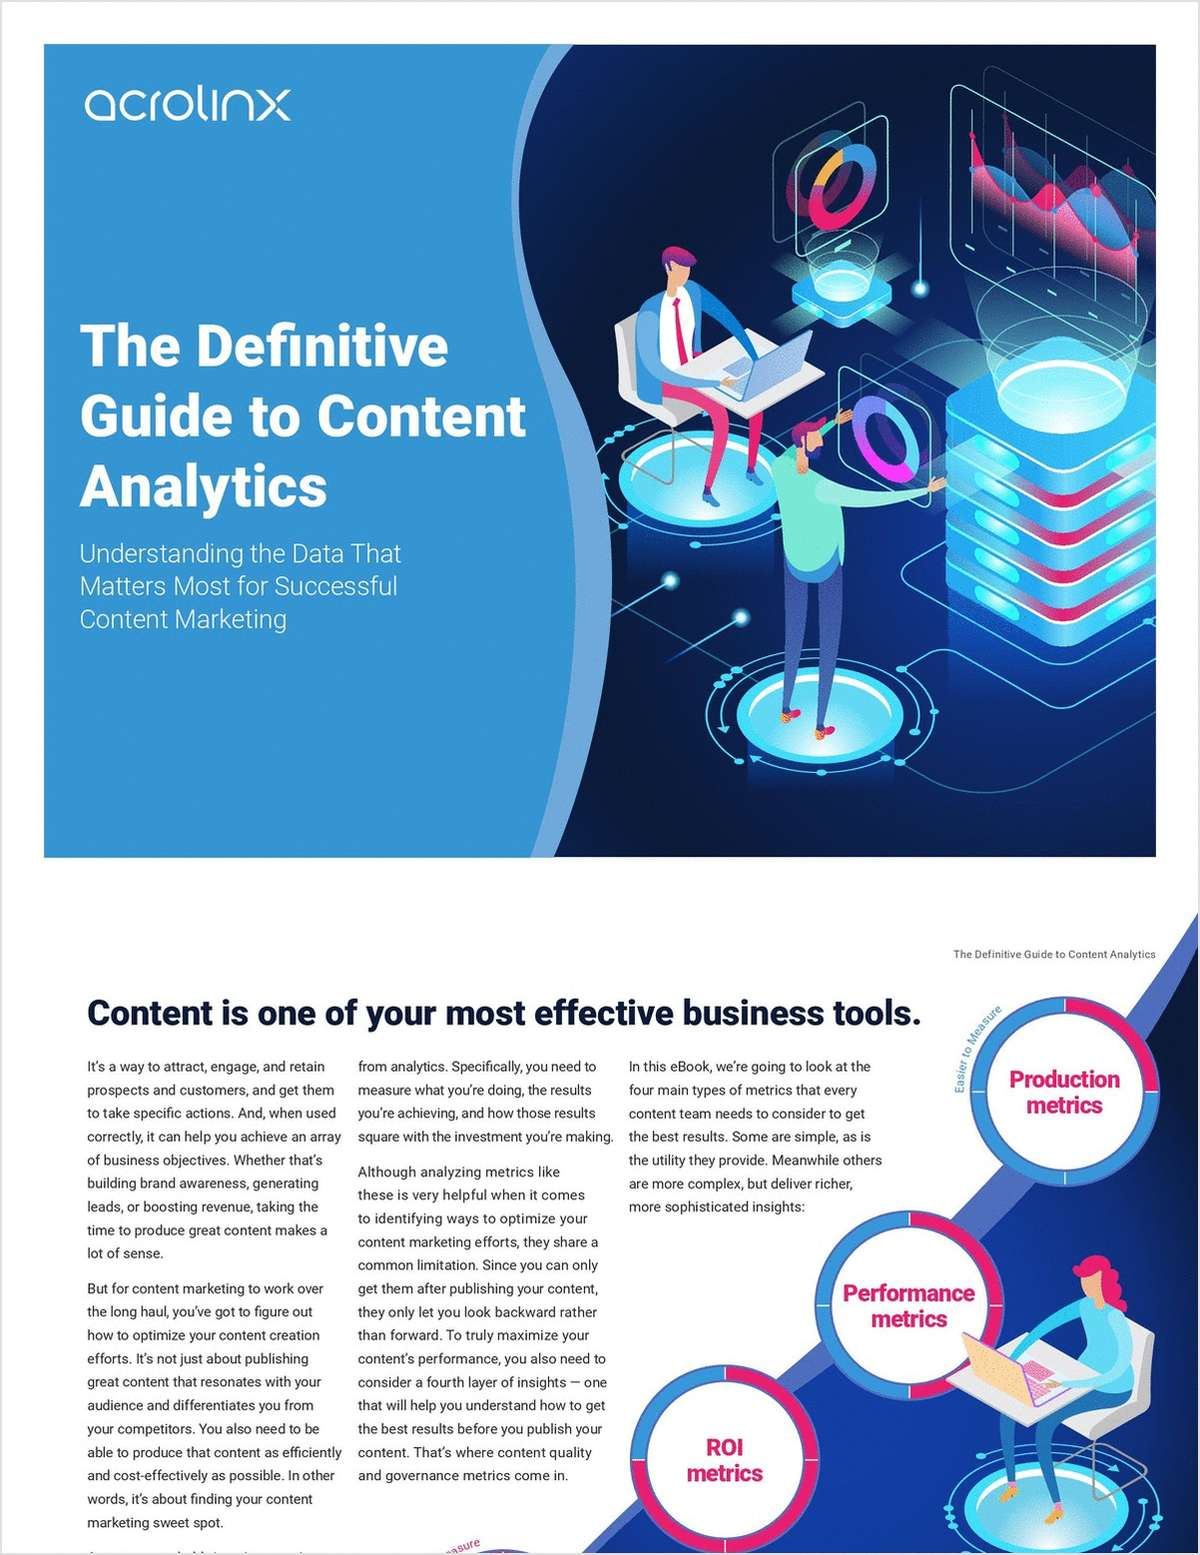 The Definitive Guide to Content Analytics: Understanding the Data That Matters Most for Successful Content Marketing